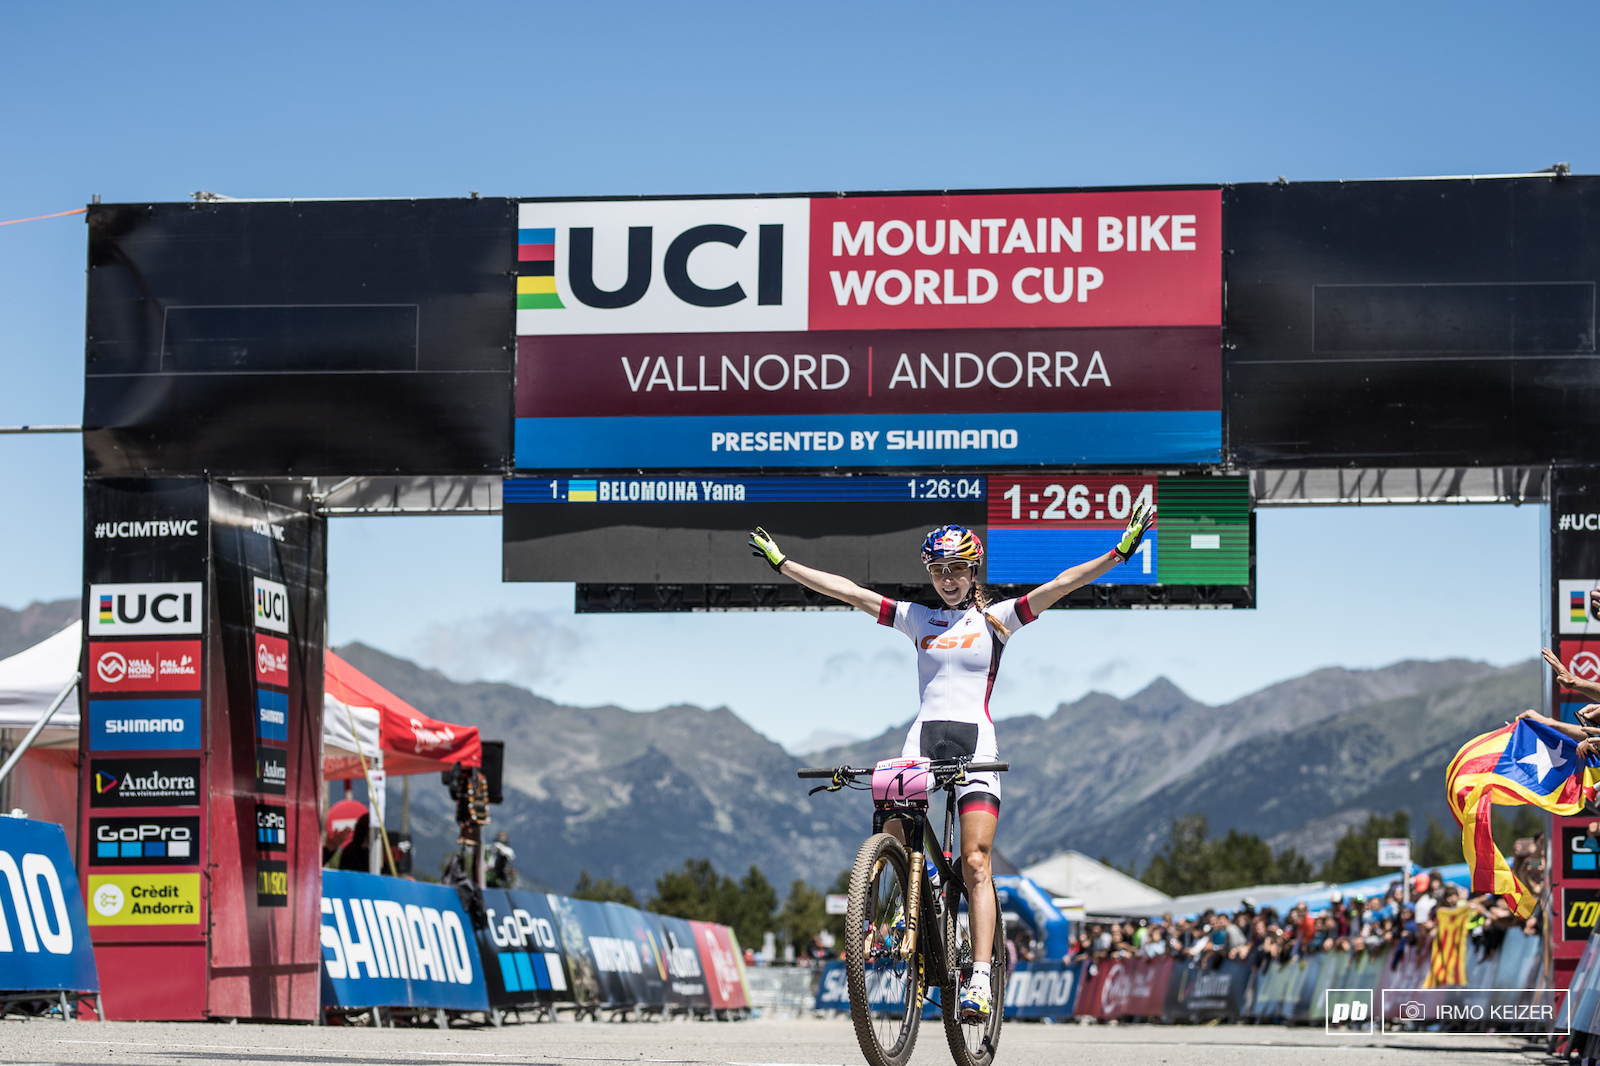 Two elite World Cup wins for Belomoina.